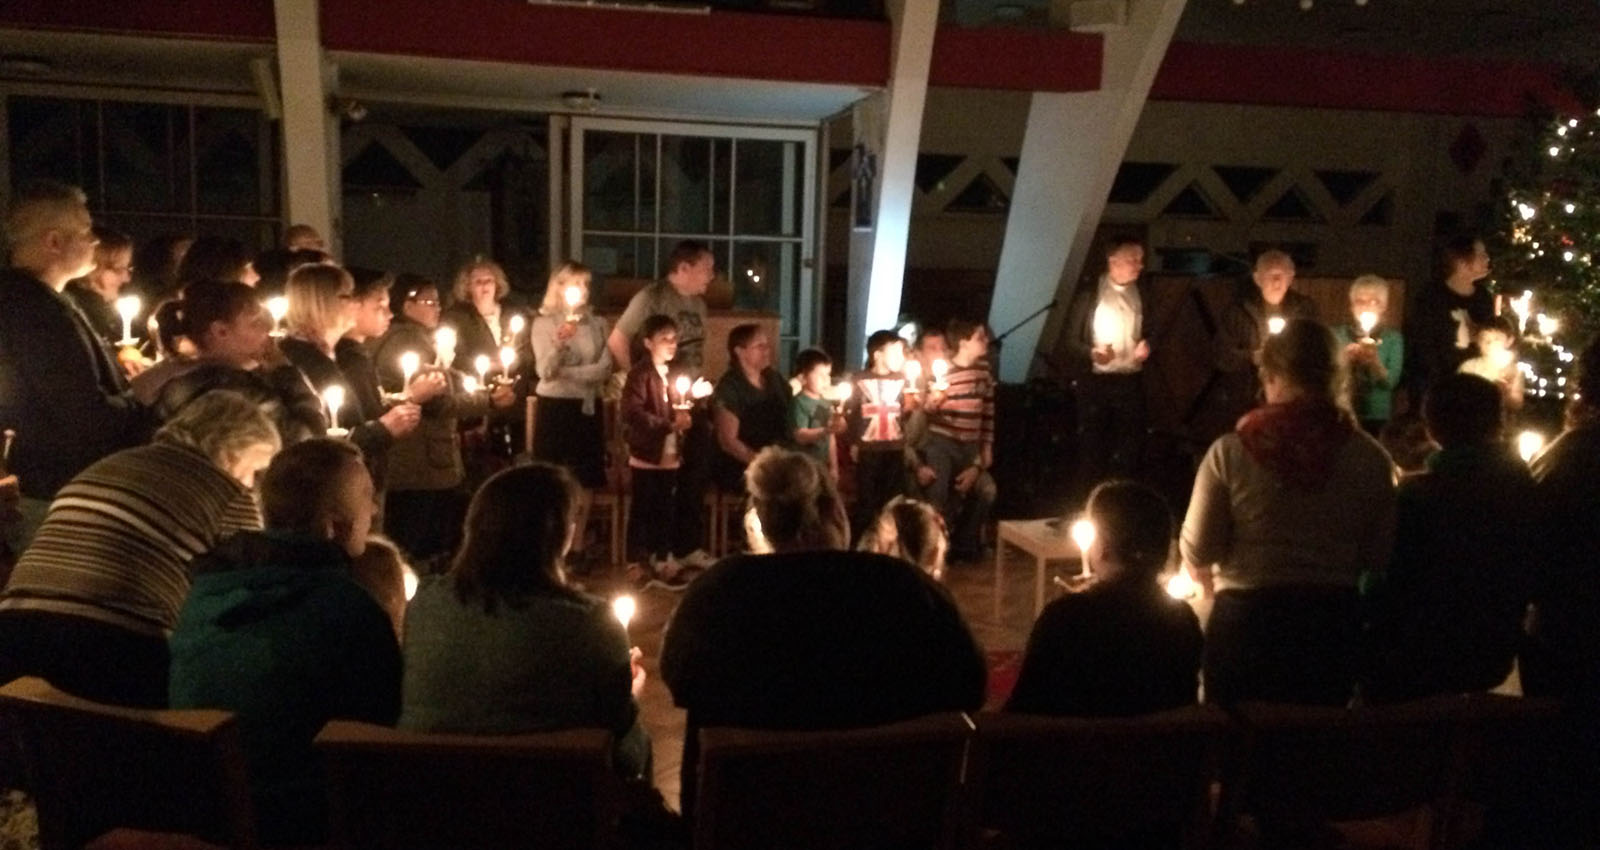 Christingle 2016 at Saint Peter's